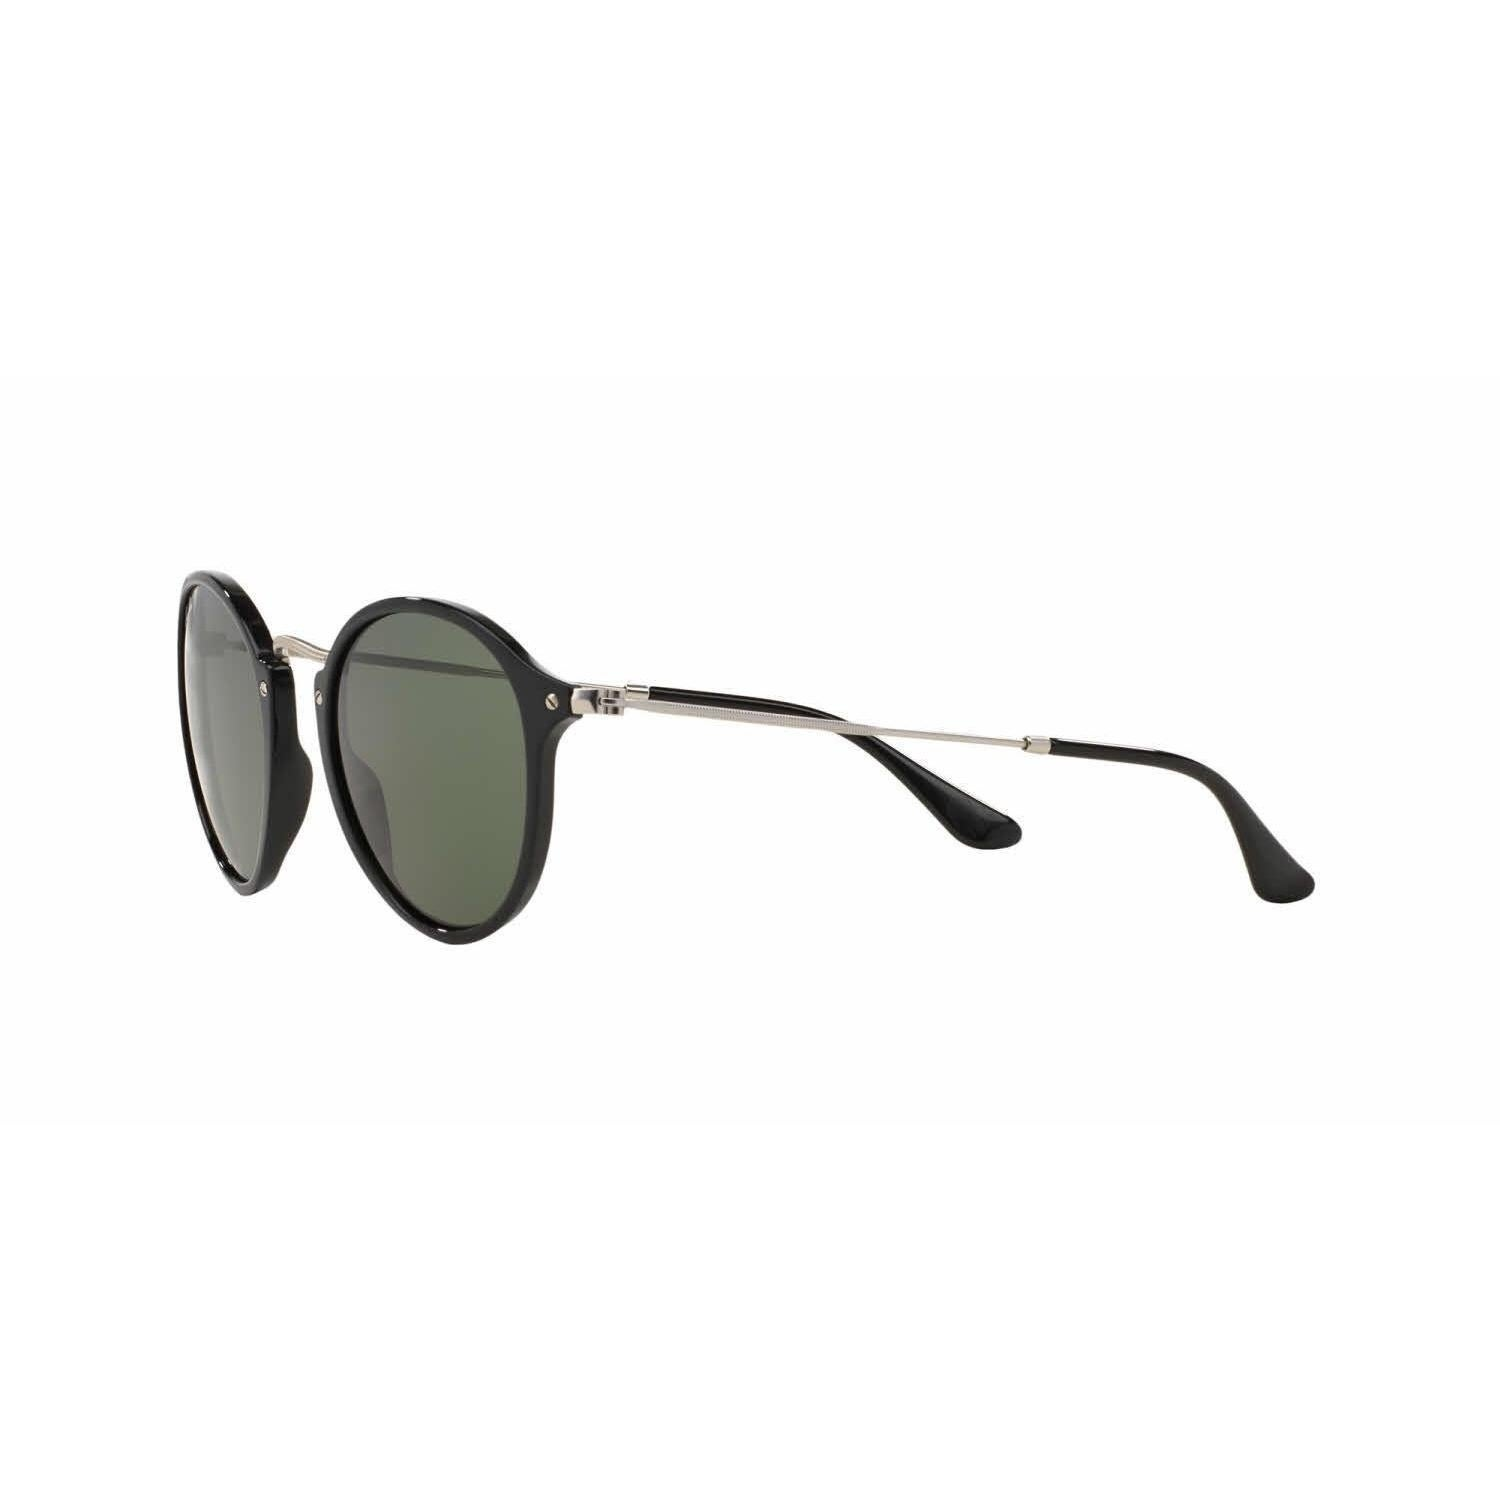 f1c501a4bb Shop Ray-Ban Round Fleck RB2447 901 58 Unisex Black Silver Frame Polarized  Green Lens Sunglasses - Free Shipping Today - Overstock - 13467362